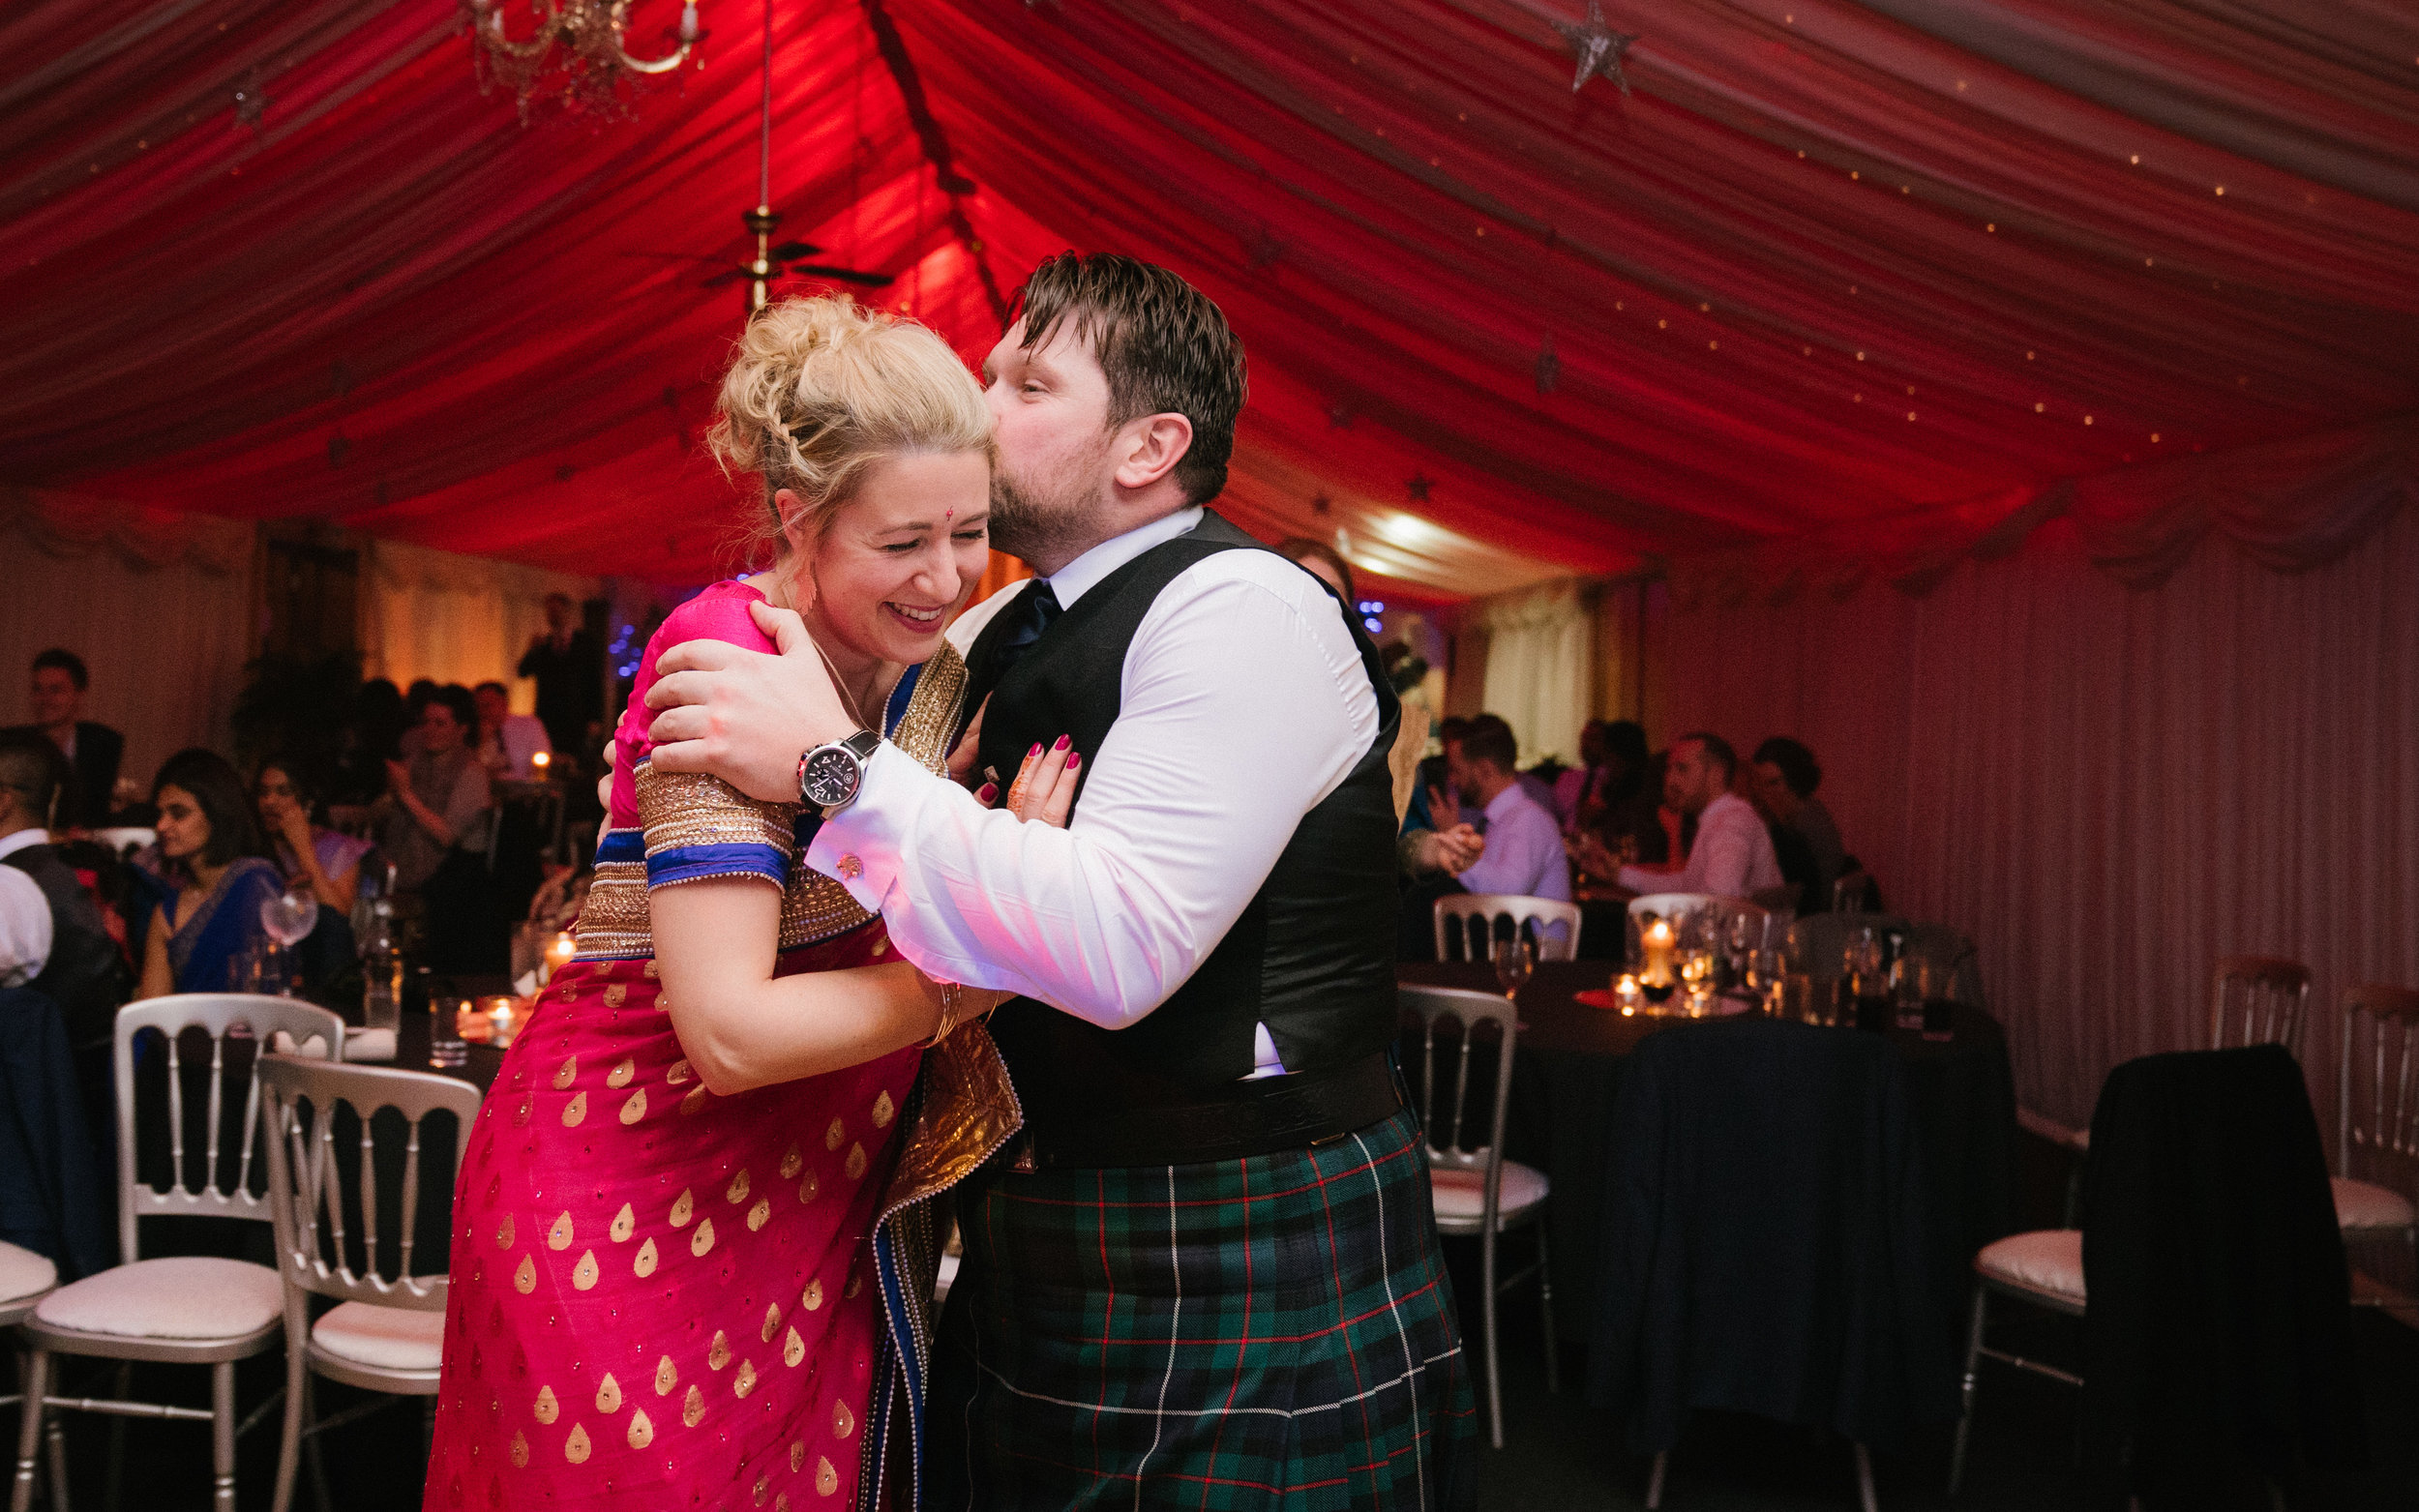 heaton-house-christmas-winter-wedding-manchester-photography-videography-97